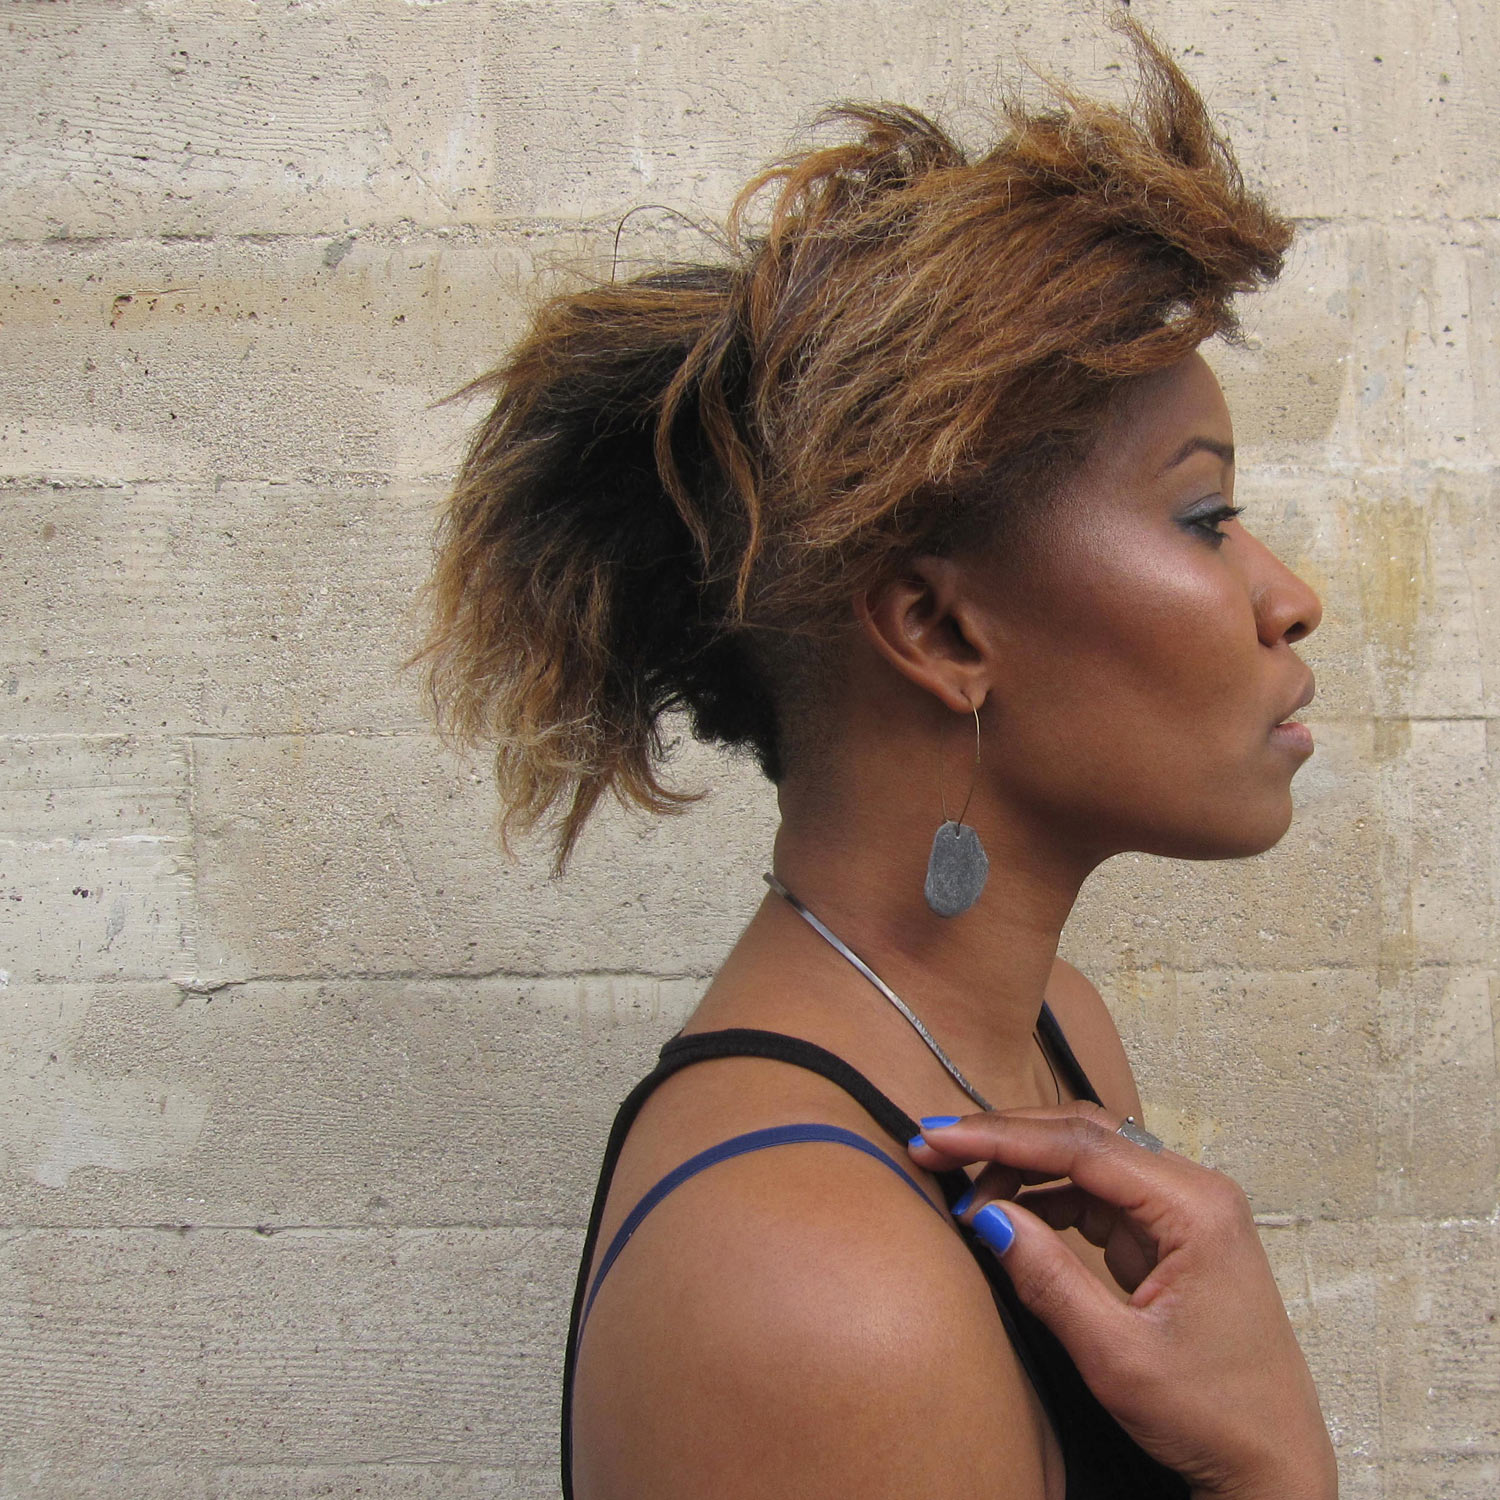 areali necklace + sasso patagonico earrings + relitto organico ring